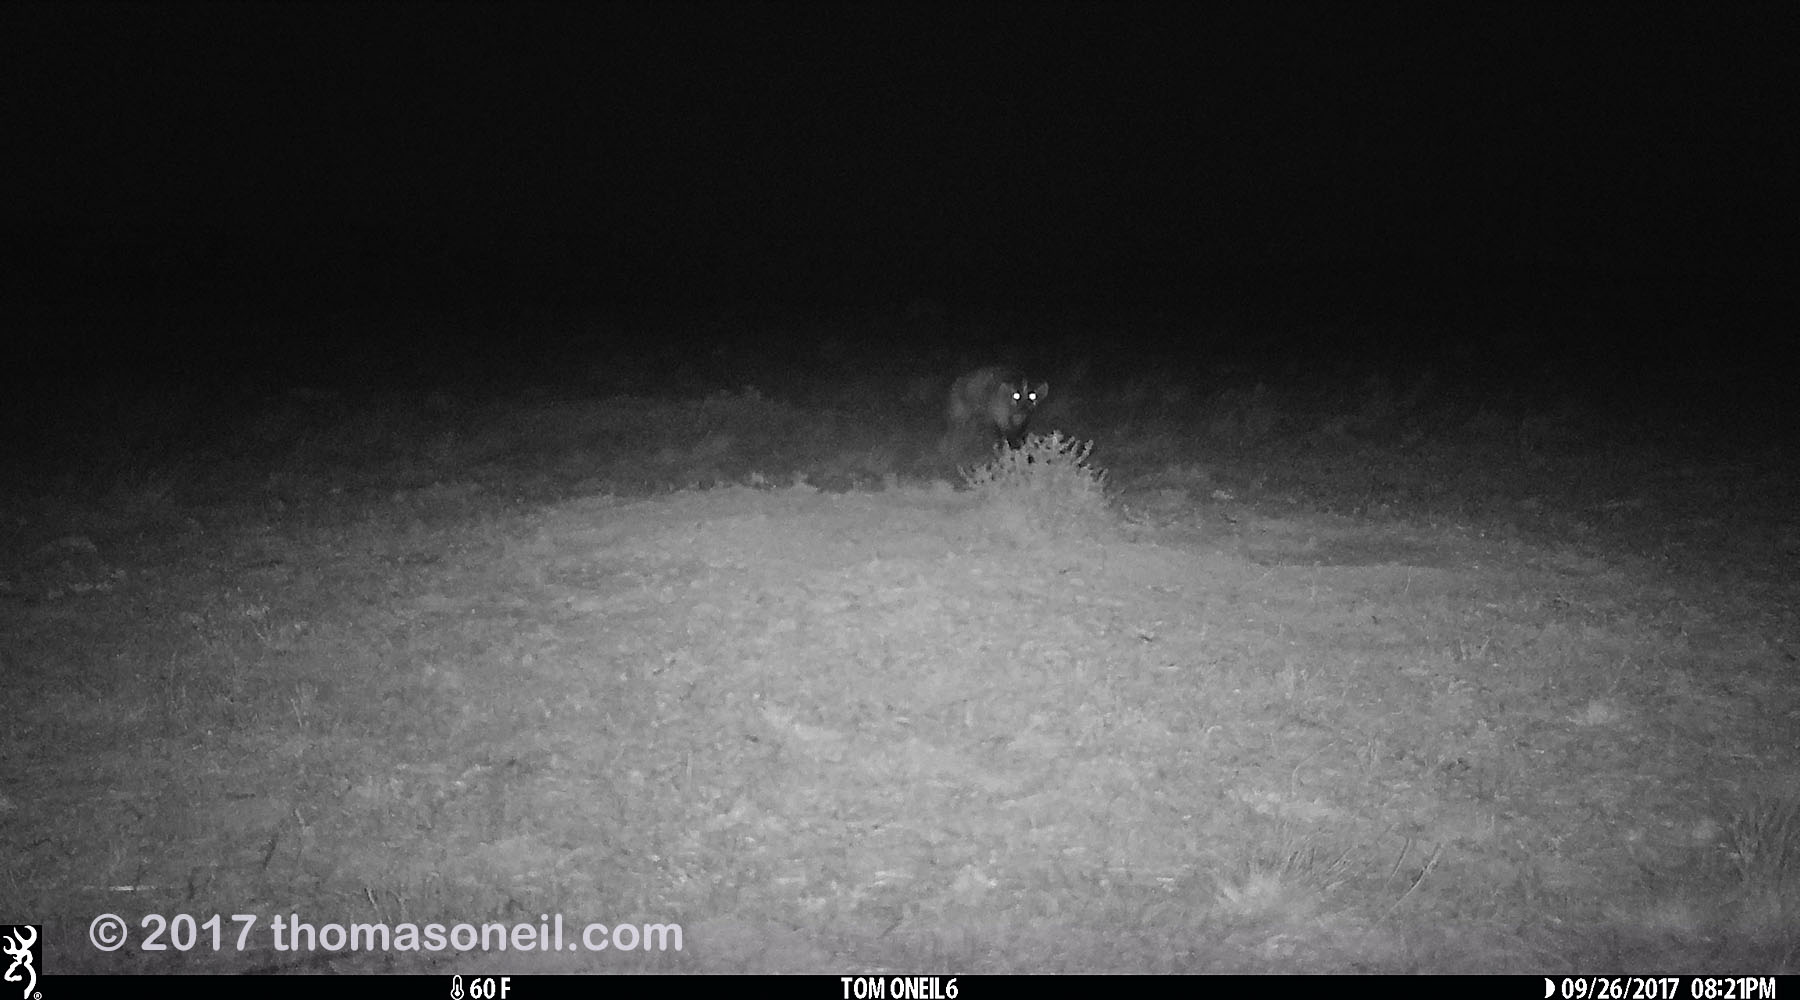 Badger, Conata Basin, South Dakota, September 2017, see video on YouTube.